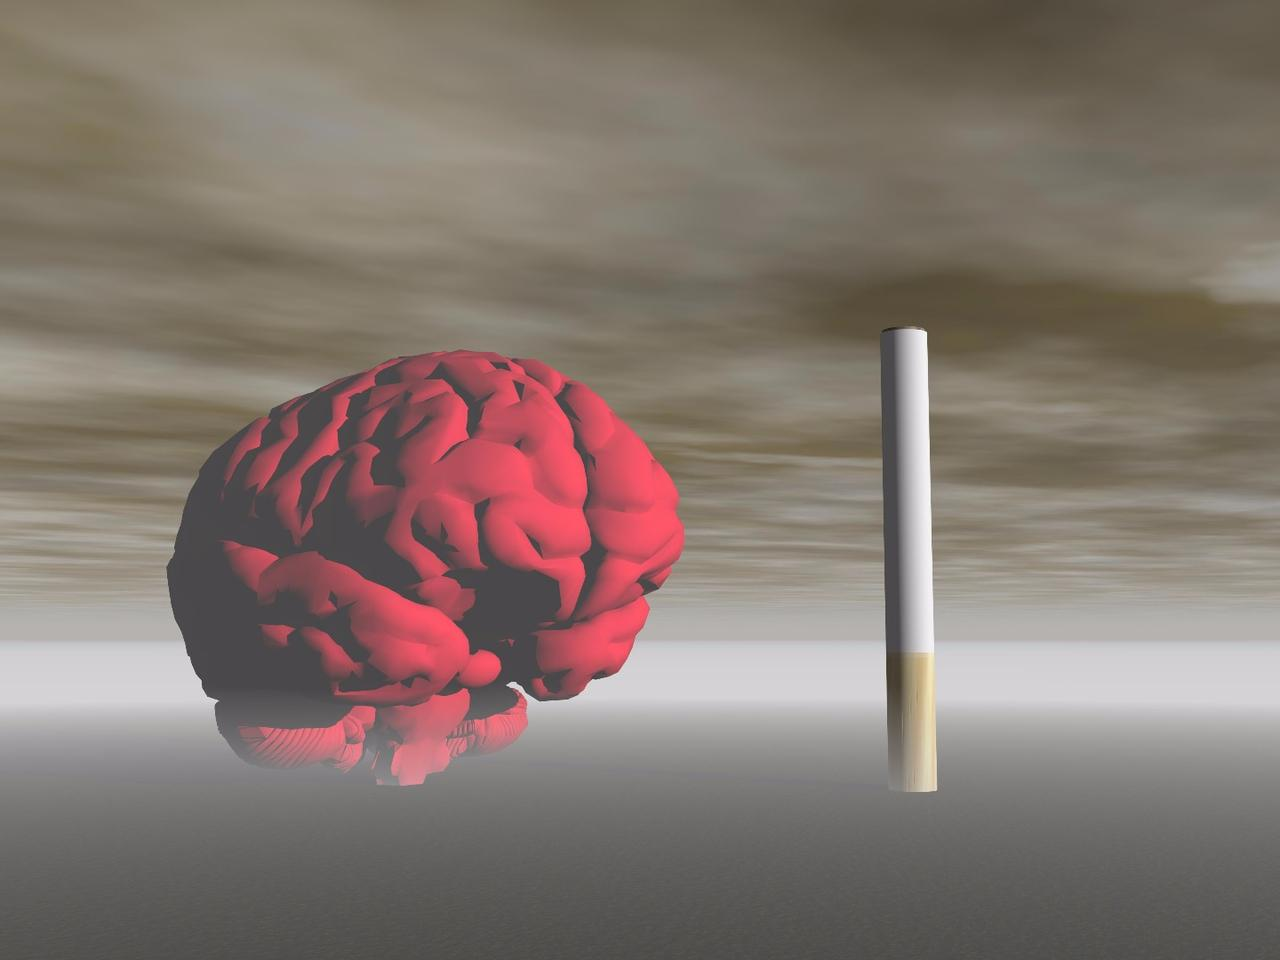 A new studyhas revealed how smoking can normalize the impairments in brain activity associated with schizophrenia,unlockingan entirely new field of drug research to combat the disease